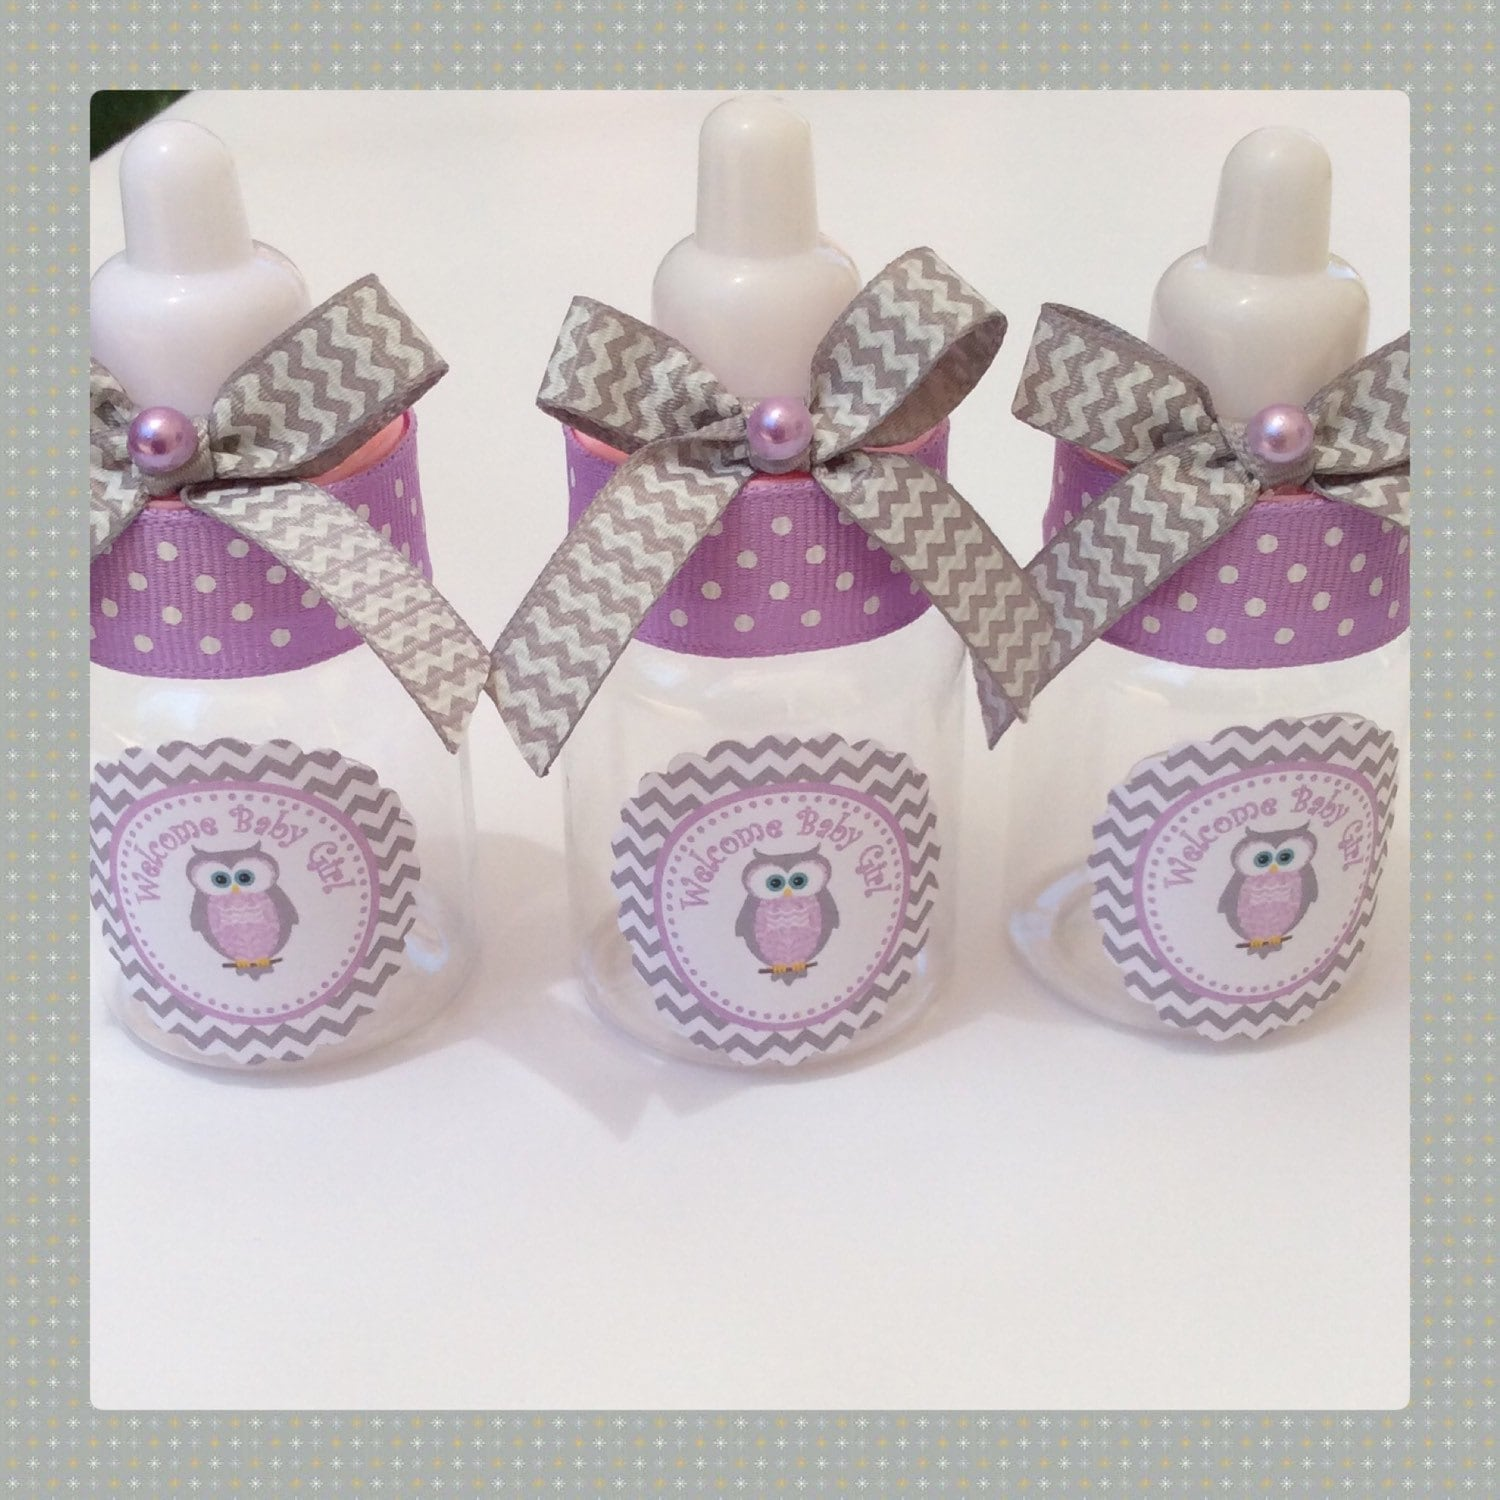 Owl Baby Shower Supplies: 12 Small 3.5 Owl Baby Shower Favors Chevron Owl Baby